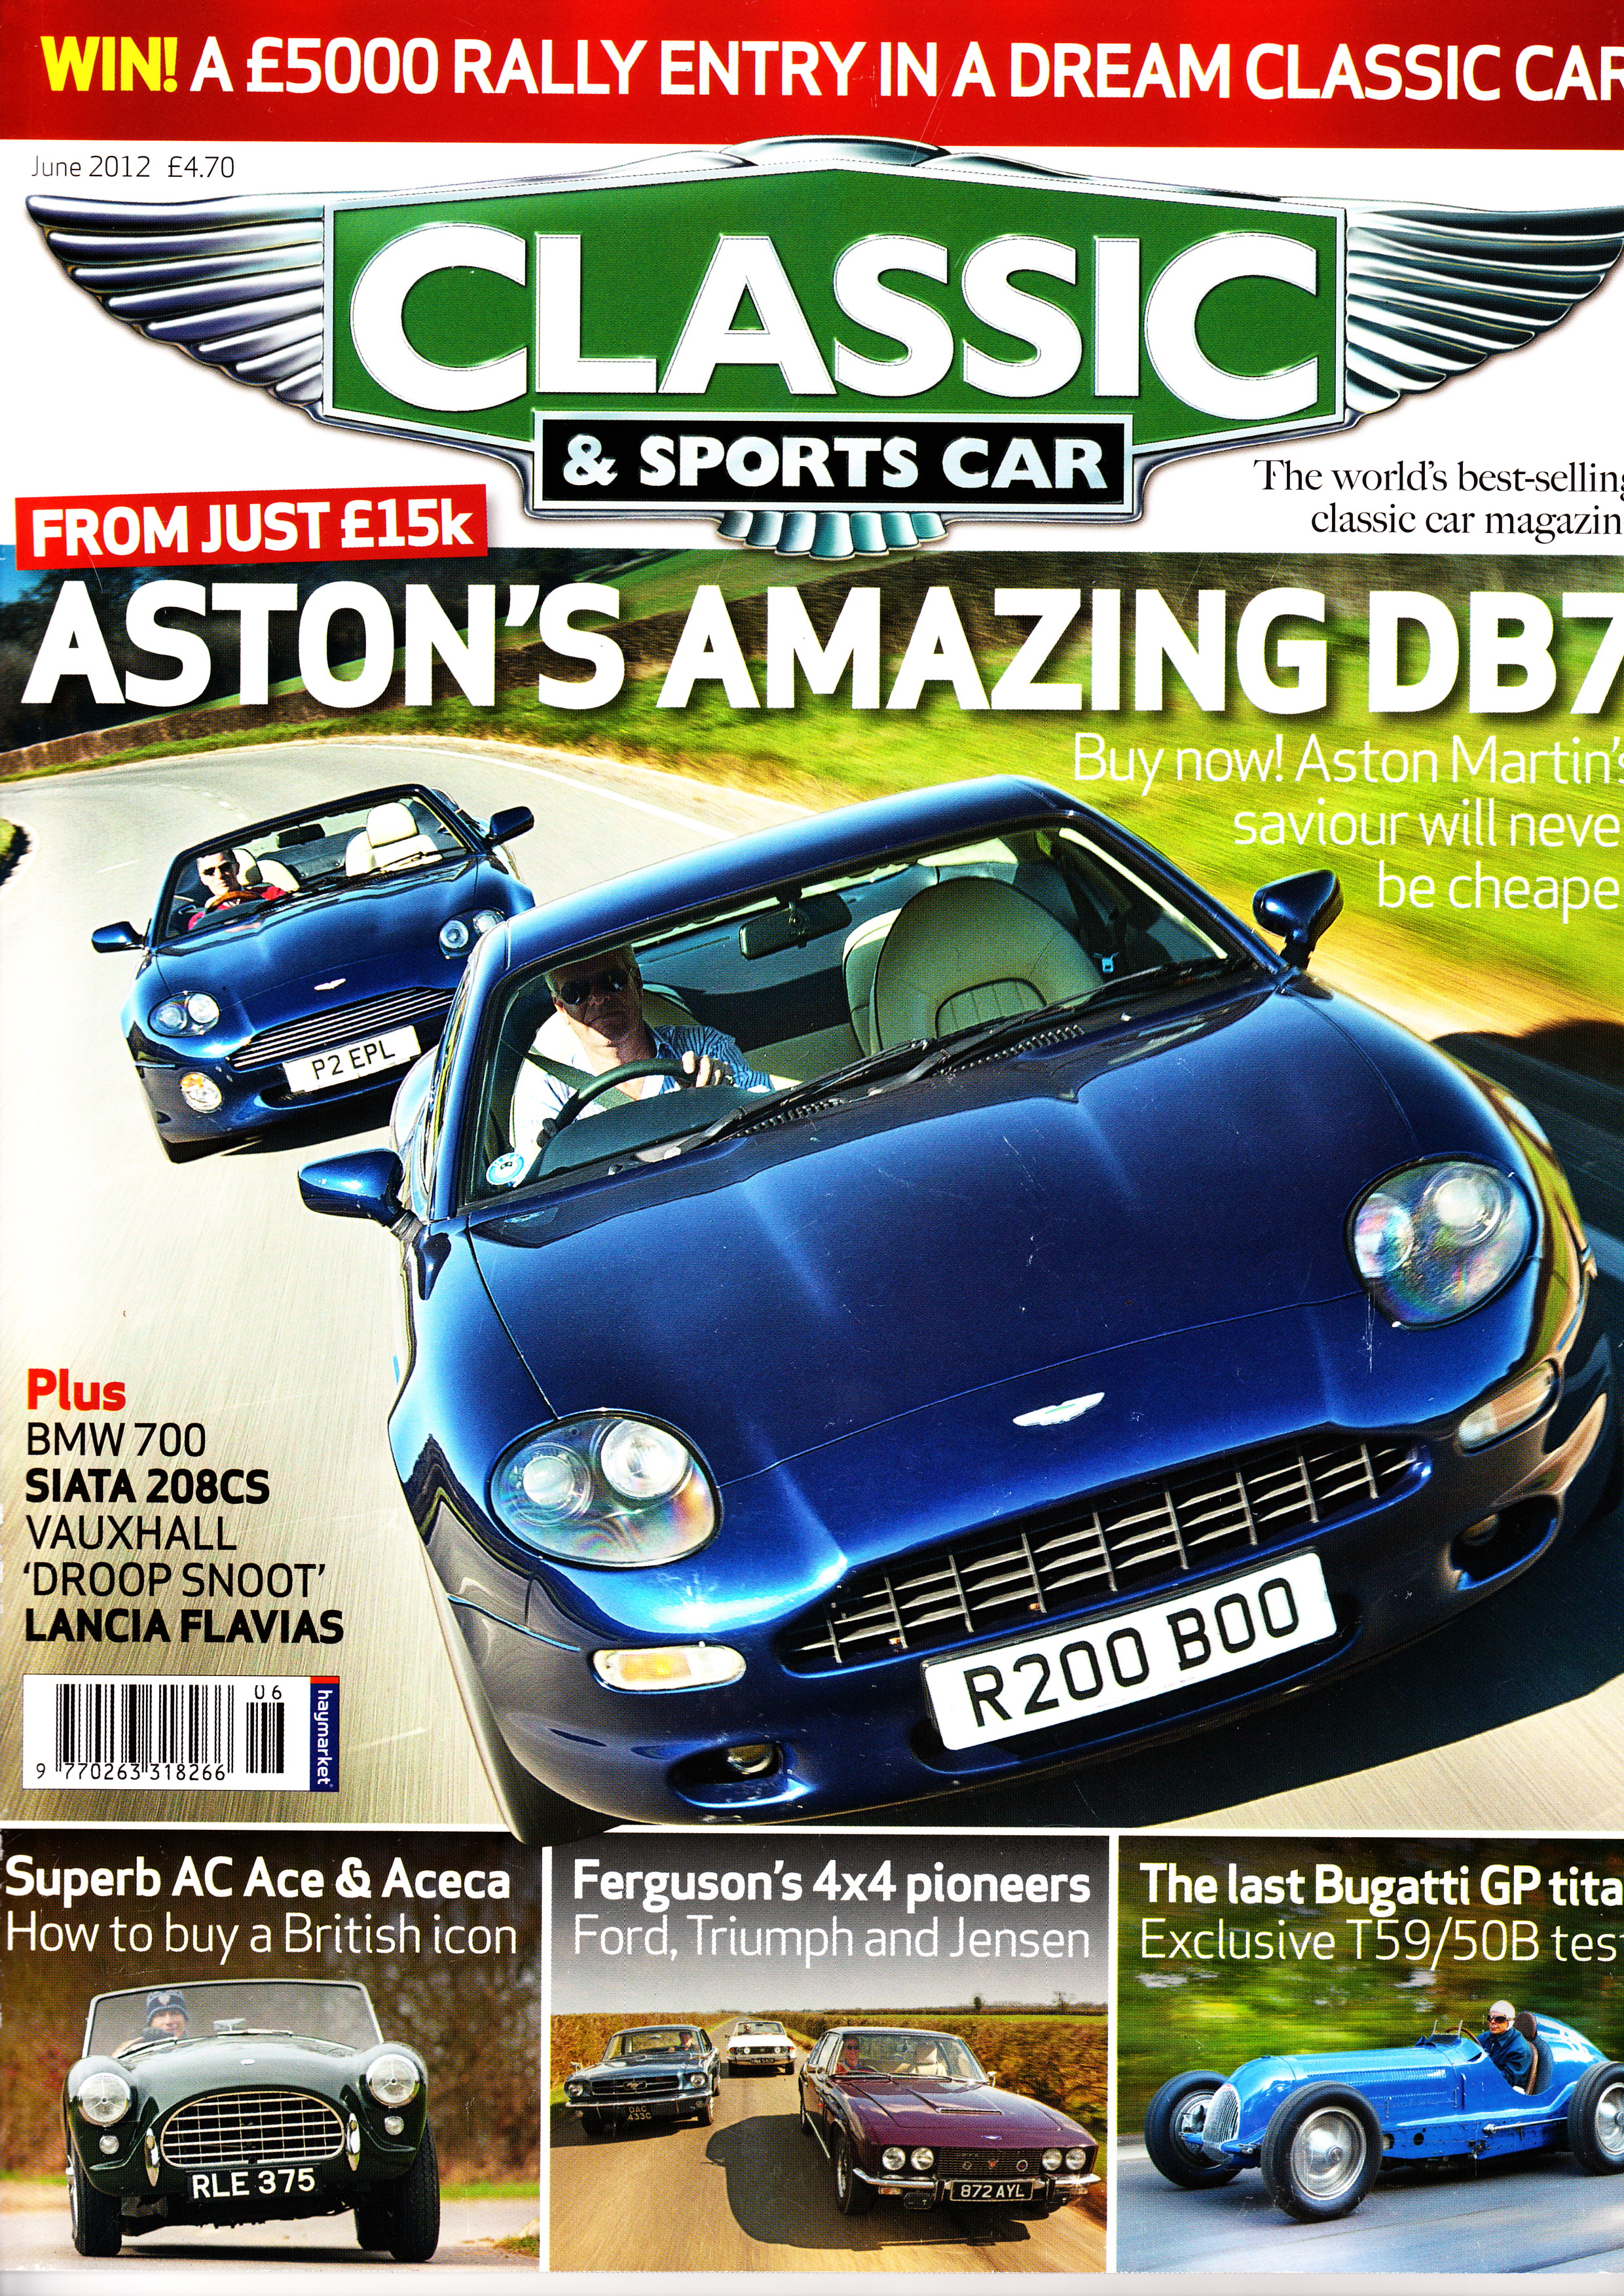 Alfa Img Showing Classic Car Magazine Covers